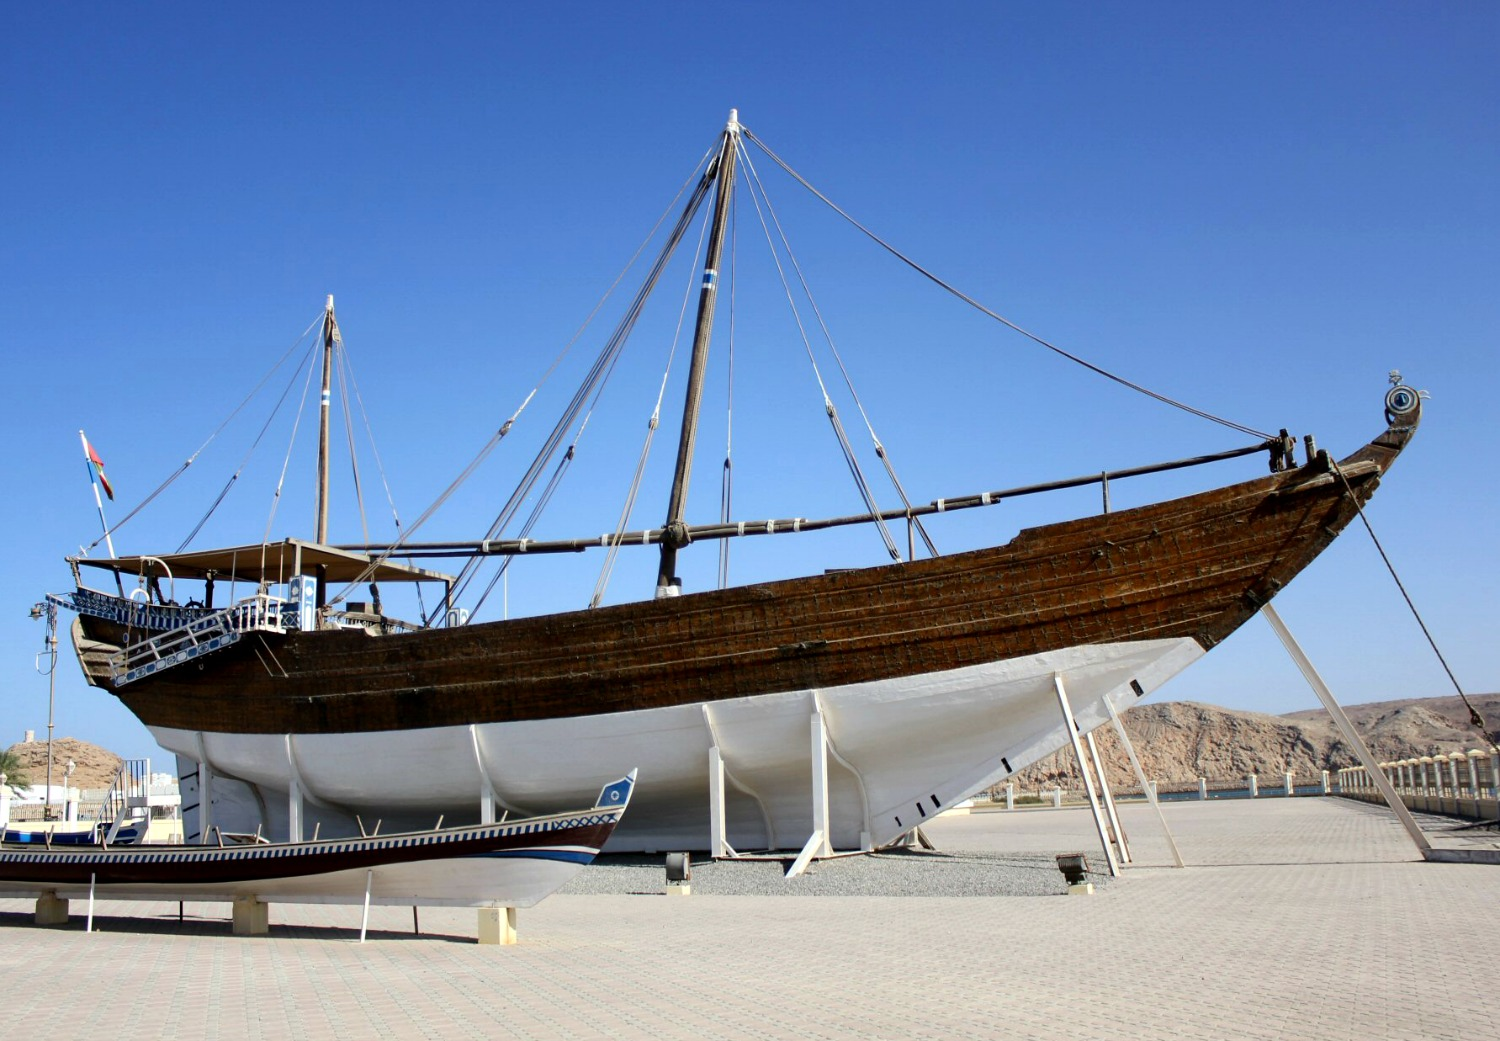 A historic dhow boat with white hull against a blue sky at Sur in Oman - my nine reasons to visit Oman with kids